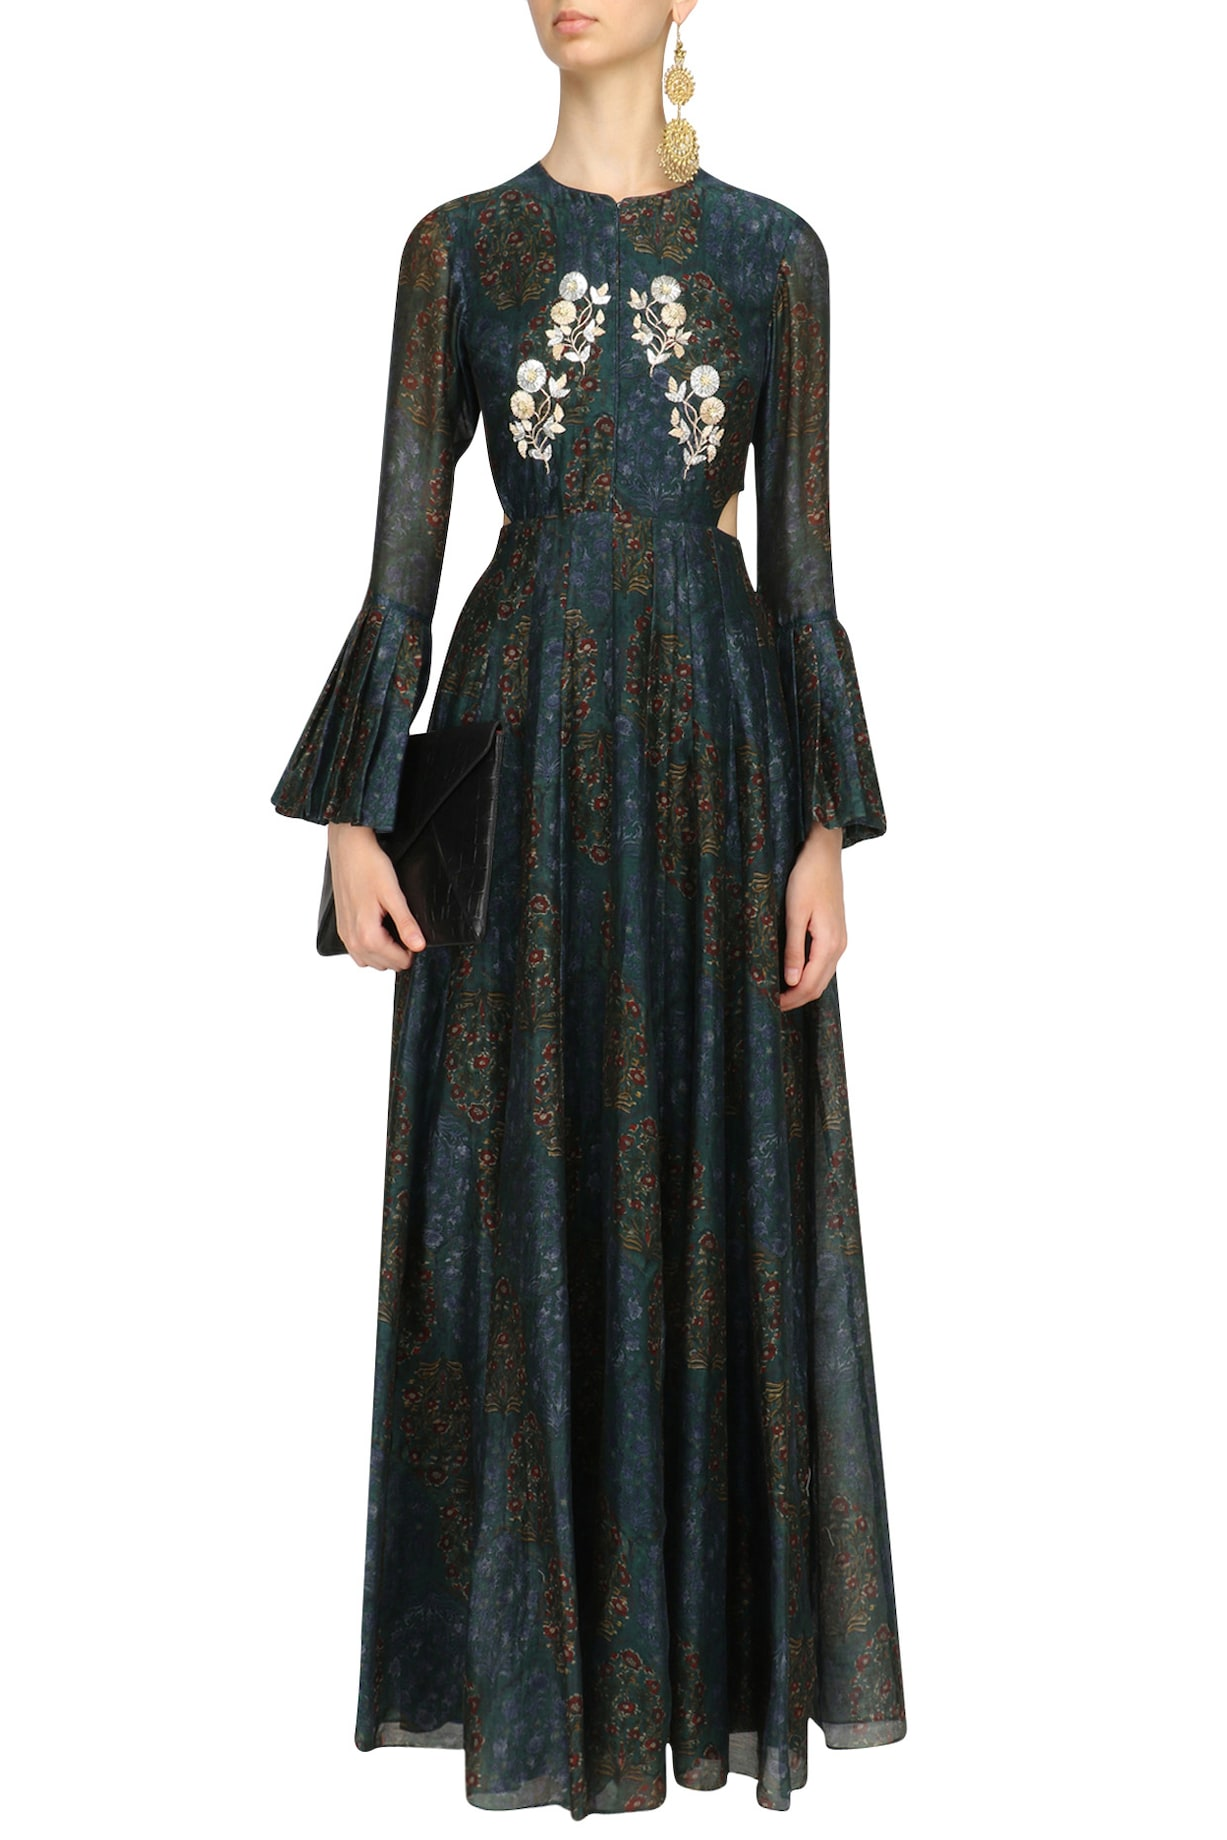 Anoli Shah Gowns